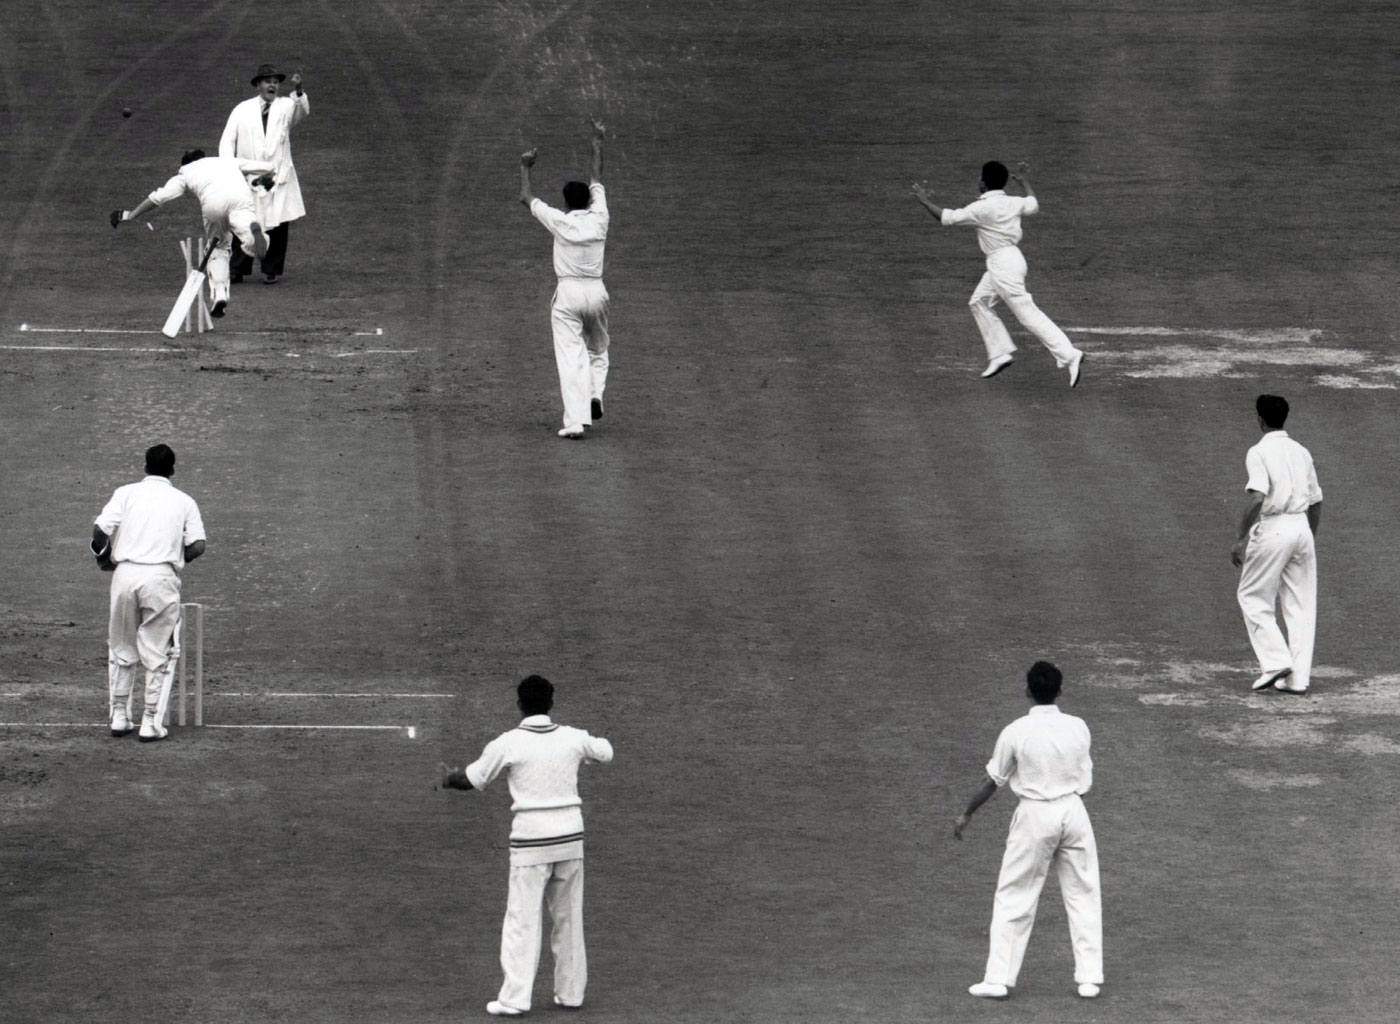 The direct hit that sealed the victory Pak vs Eng at The Oval 1954